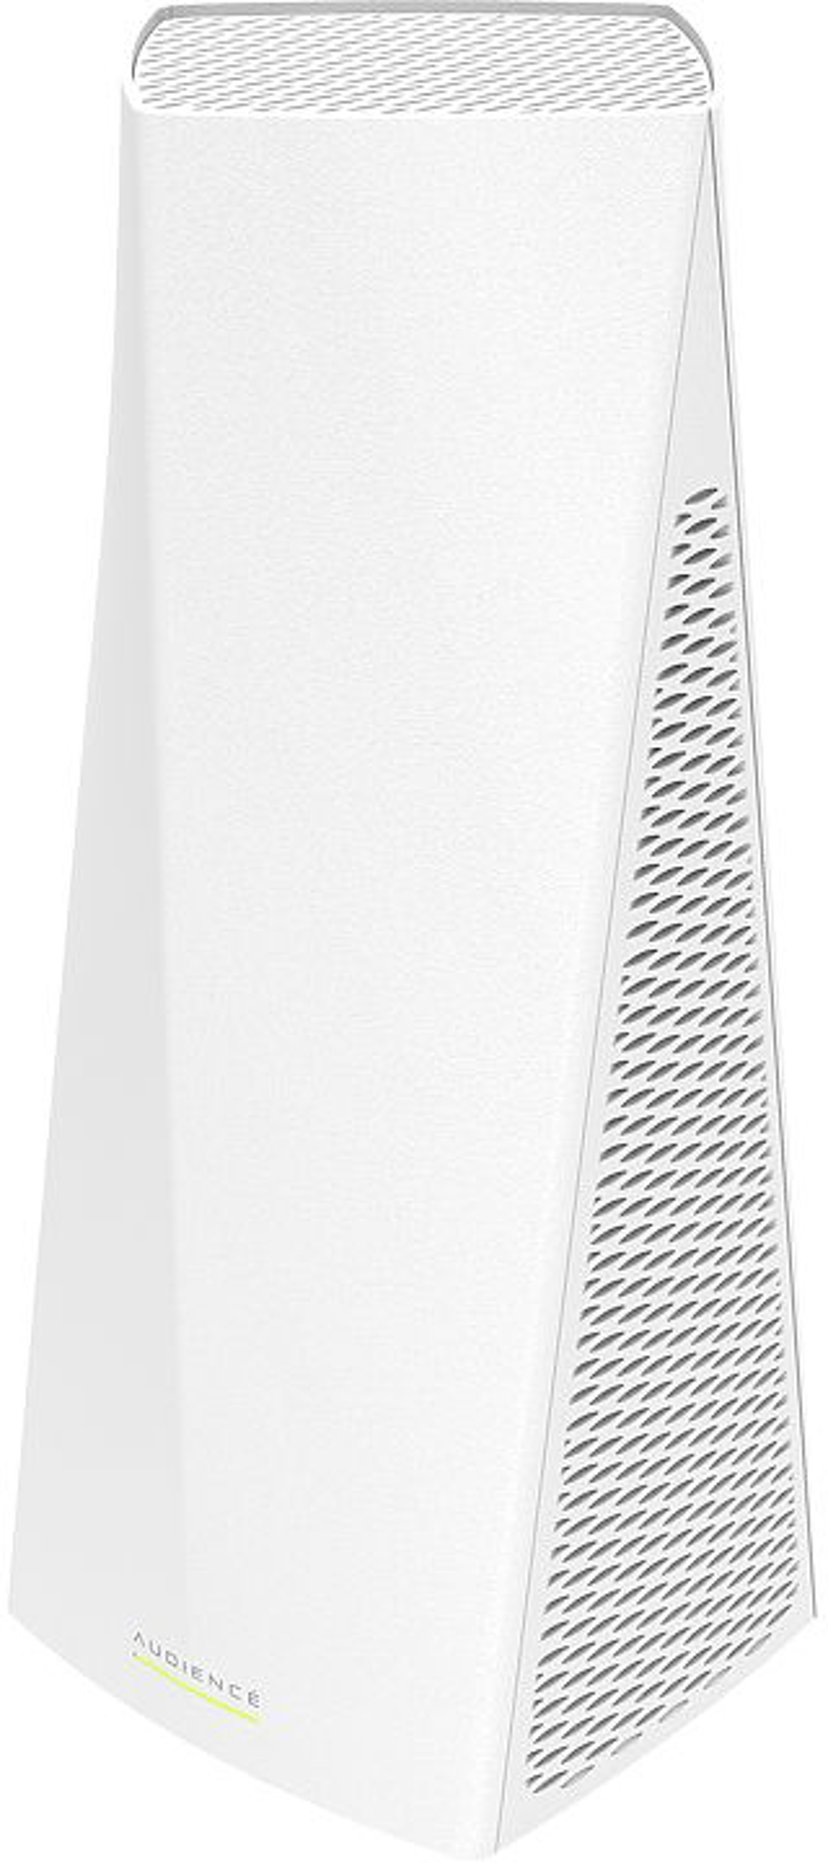 Mikrotik Audience Mesh Access Point